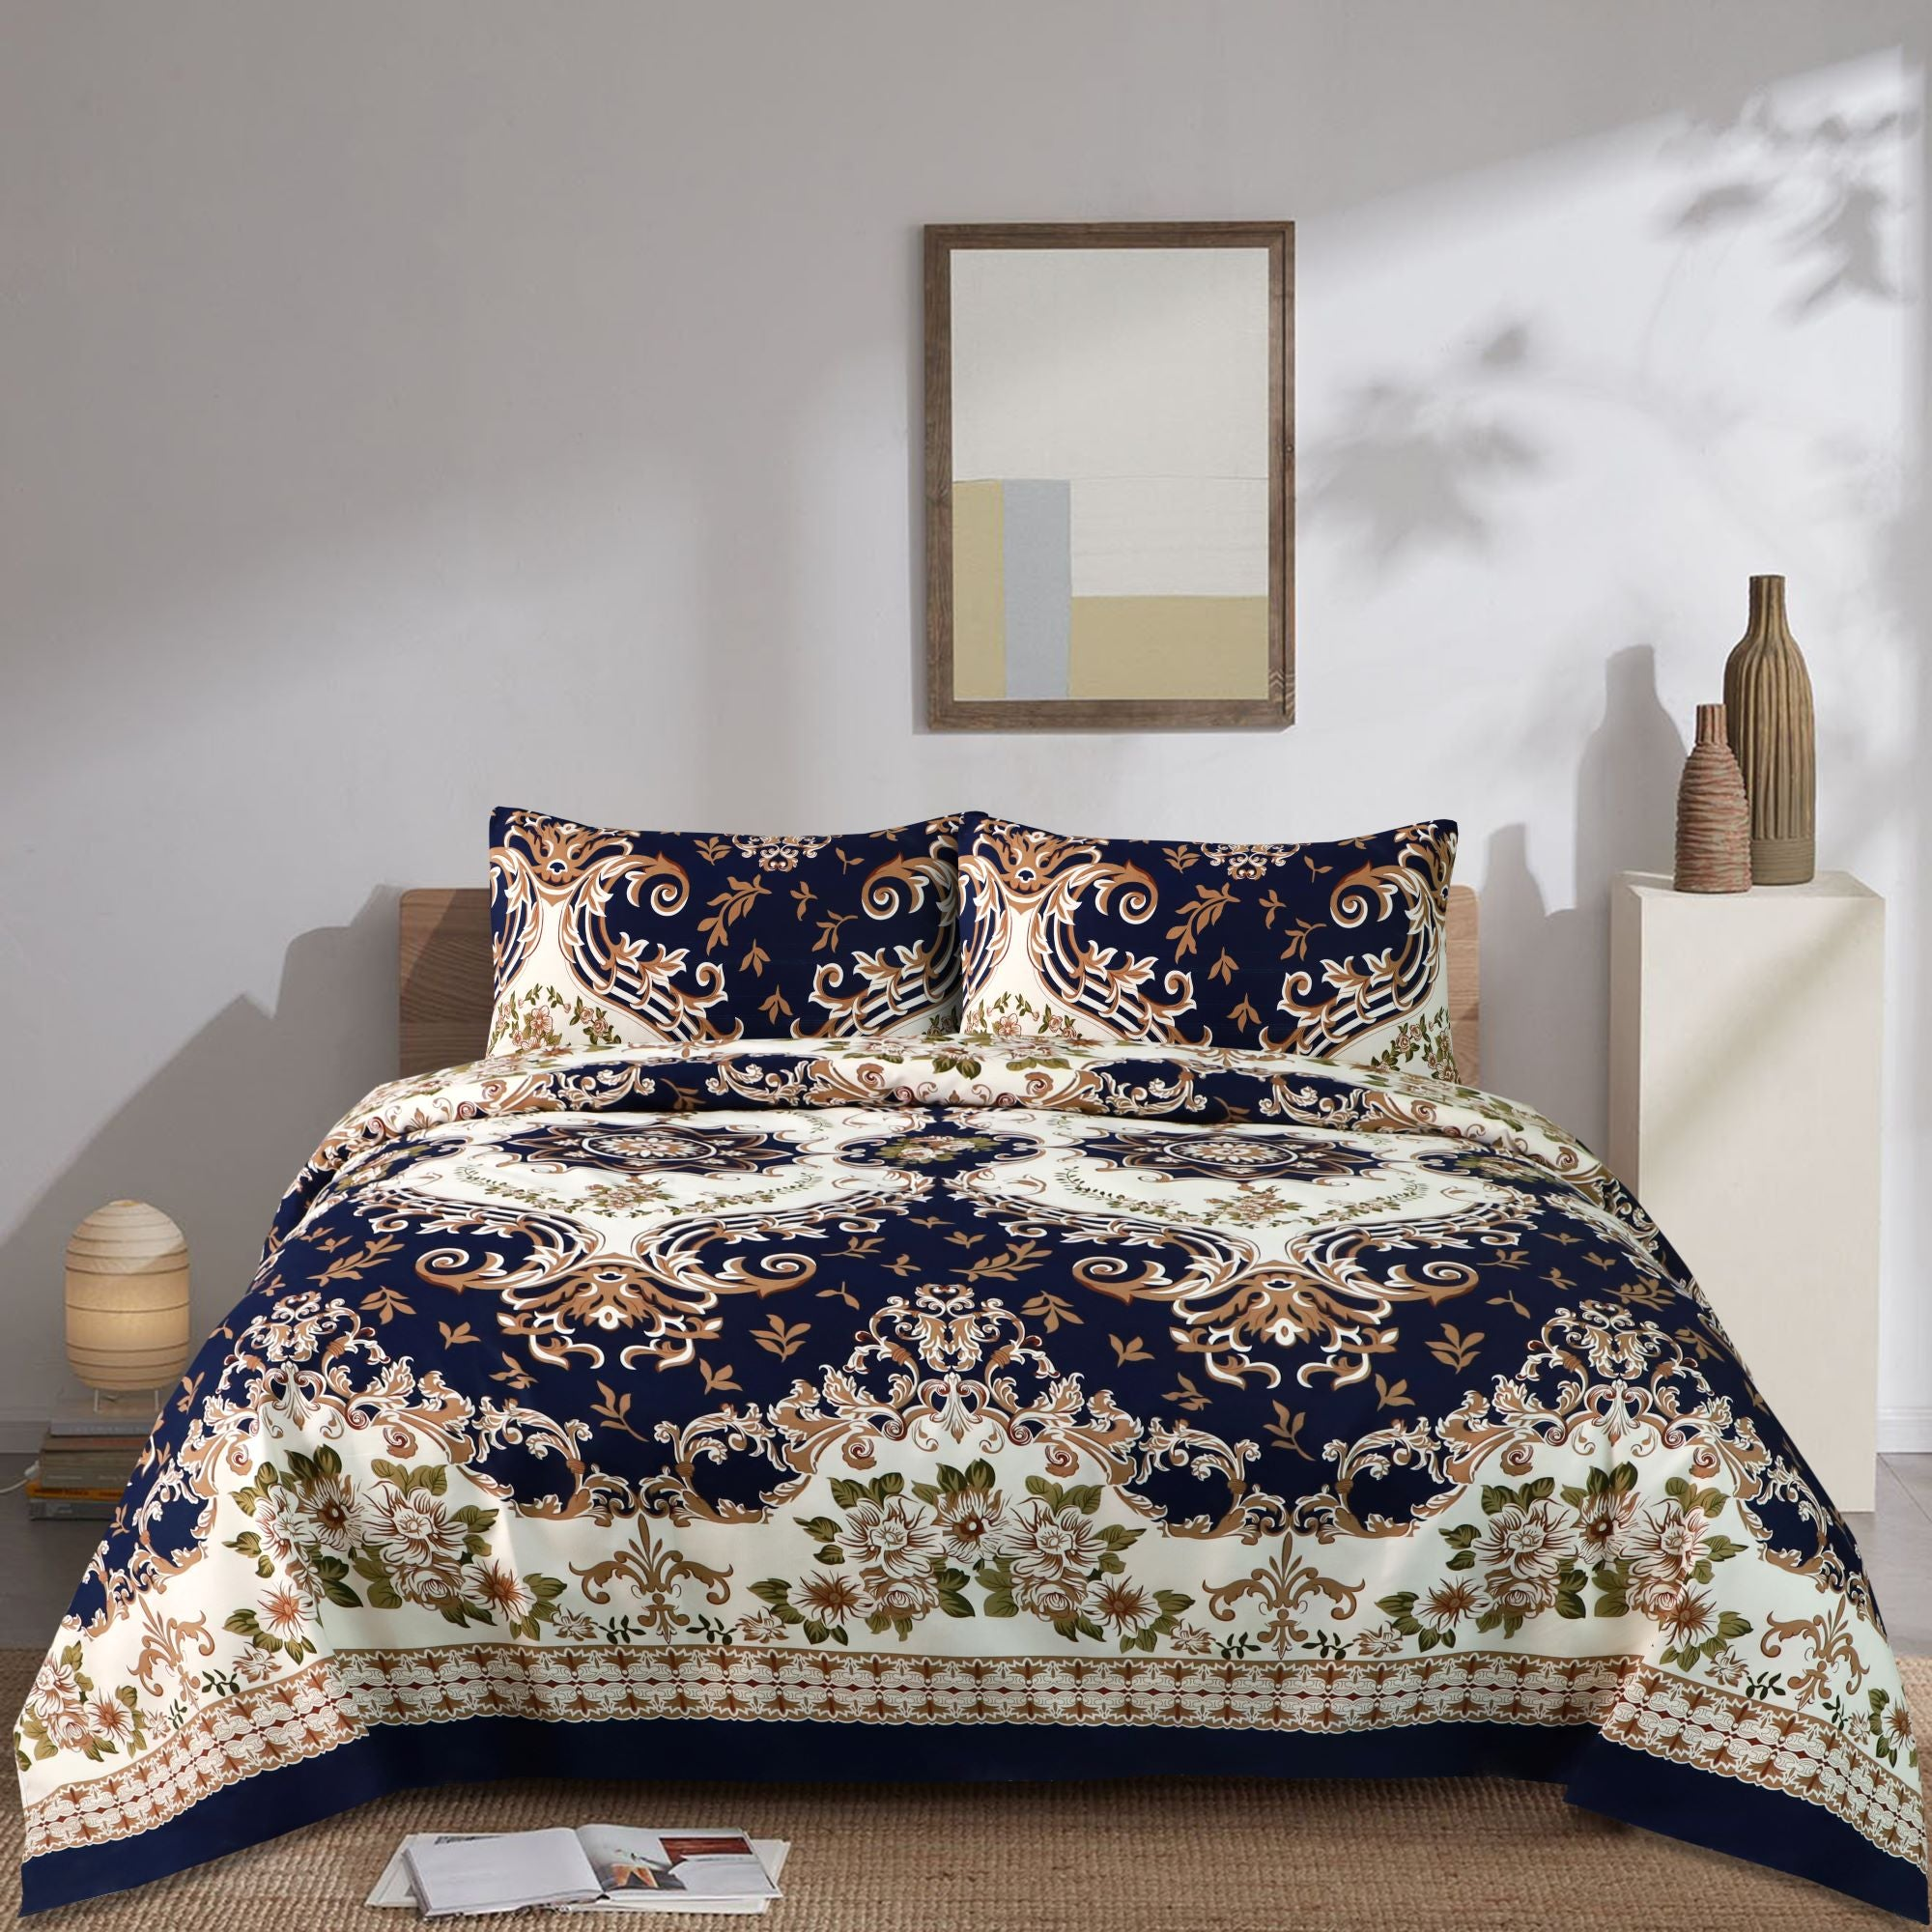 Serafino Floral Cotton Bed Sheet